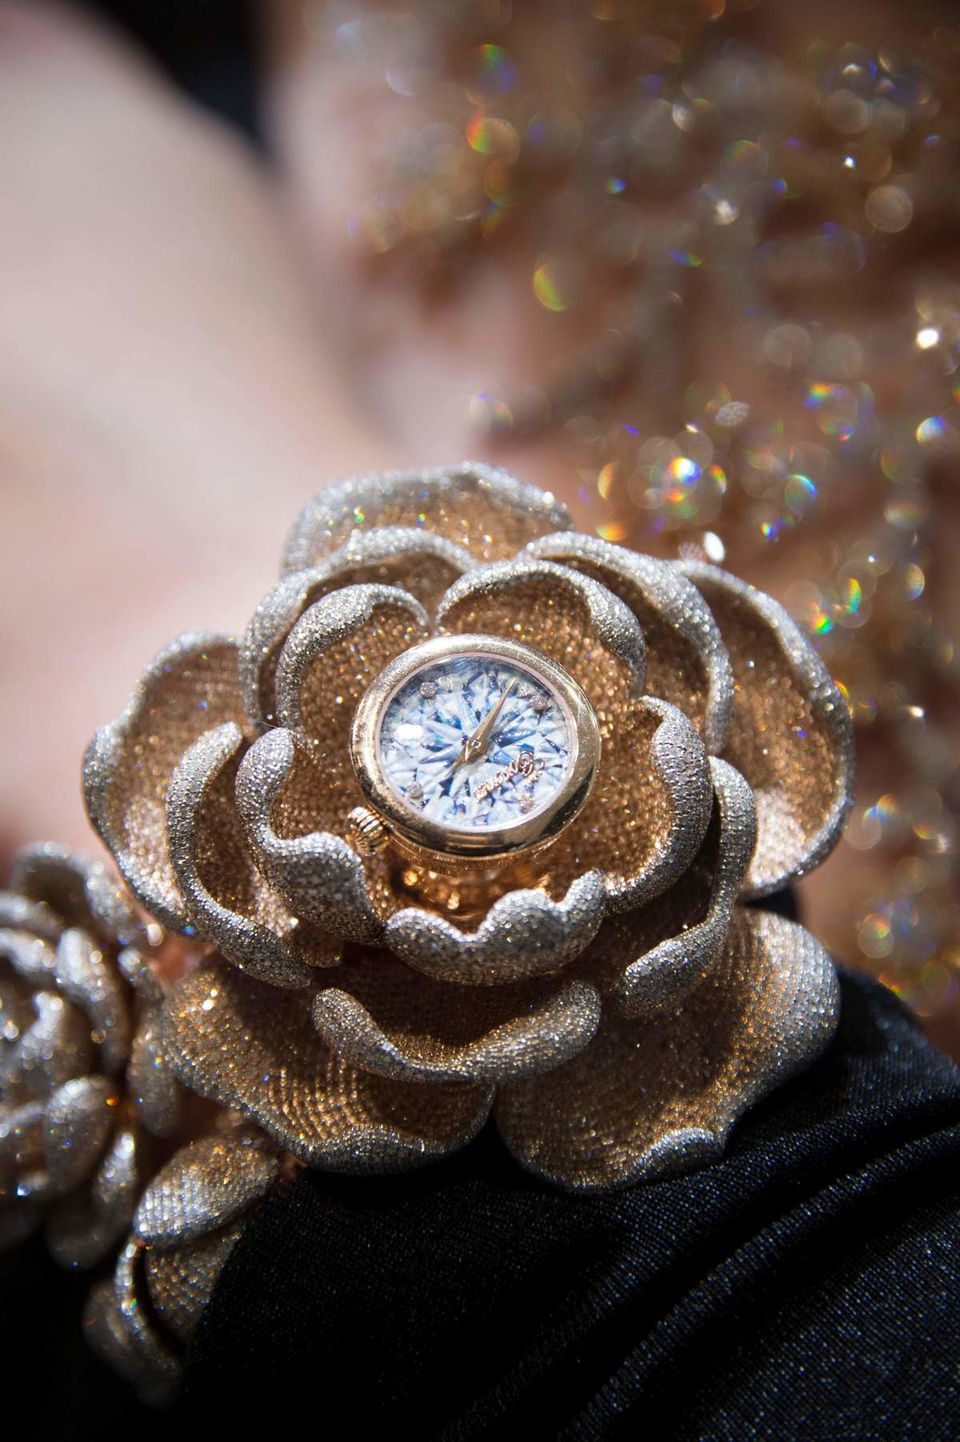 The Guinness World Records CORONET 'Mudan' diamond watch features 15,858 diamonds - most diamonds set in a watch. Image: AFP